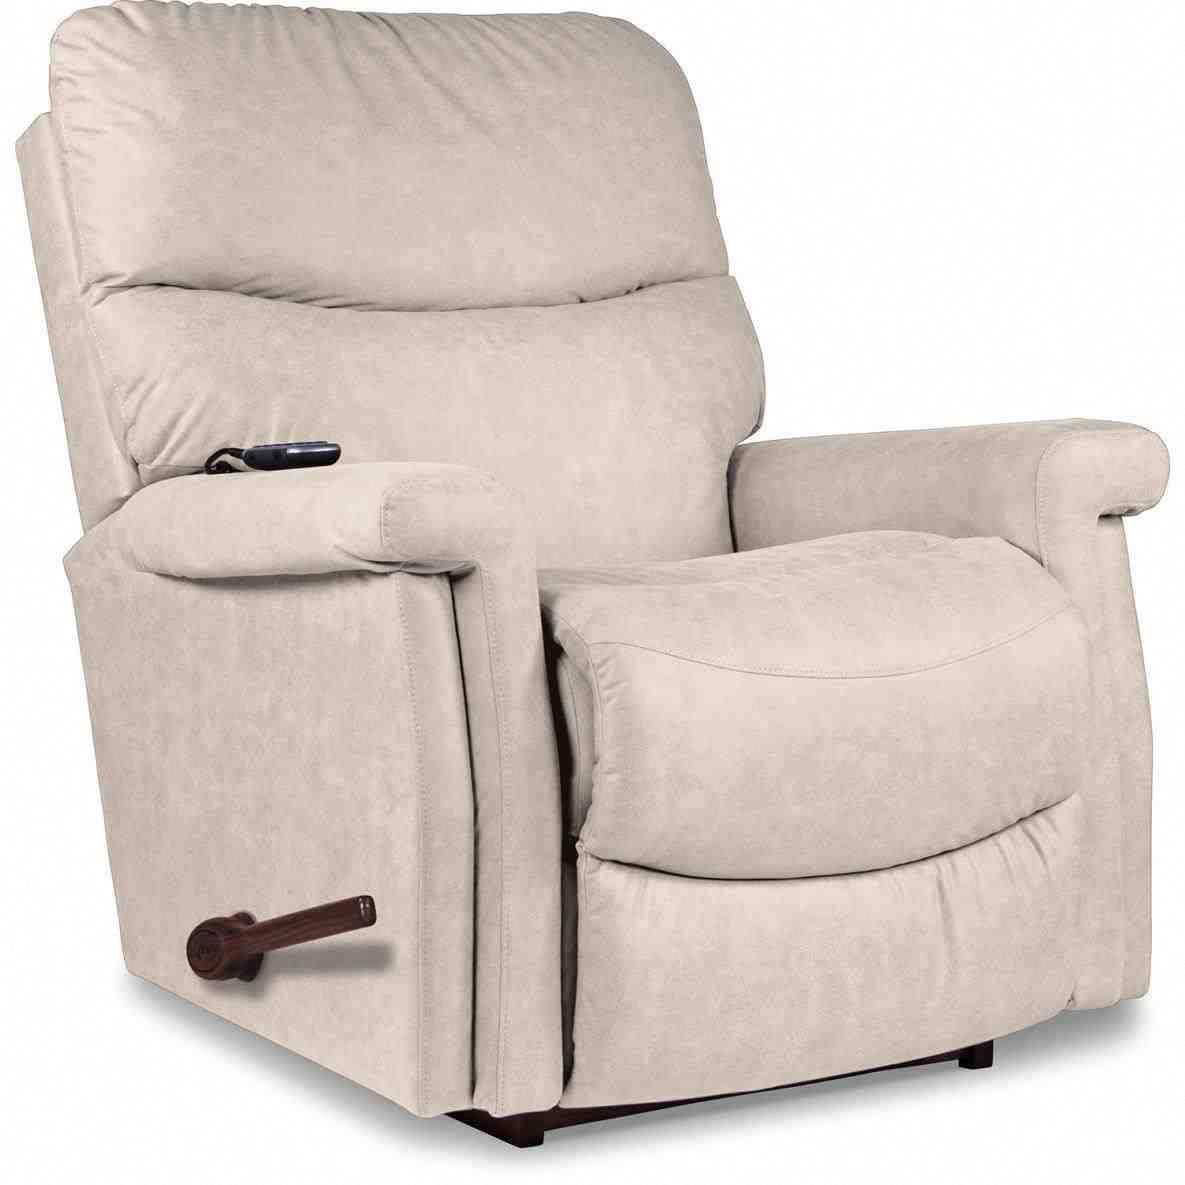 Cheap Recliners Online India Lazyboy Full Size Of Chair Chair